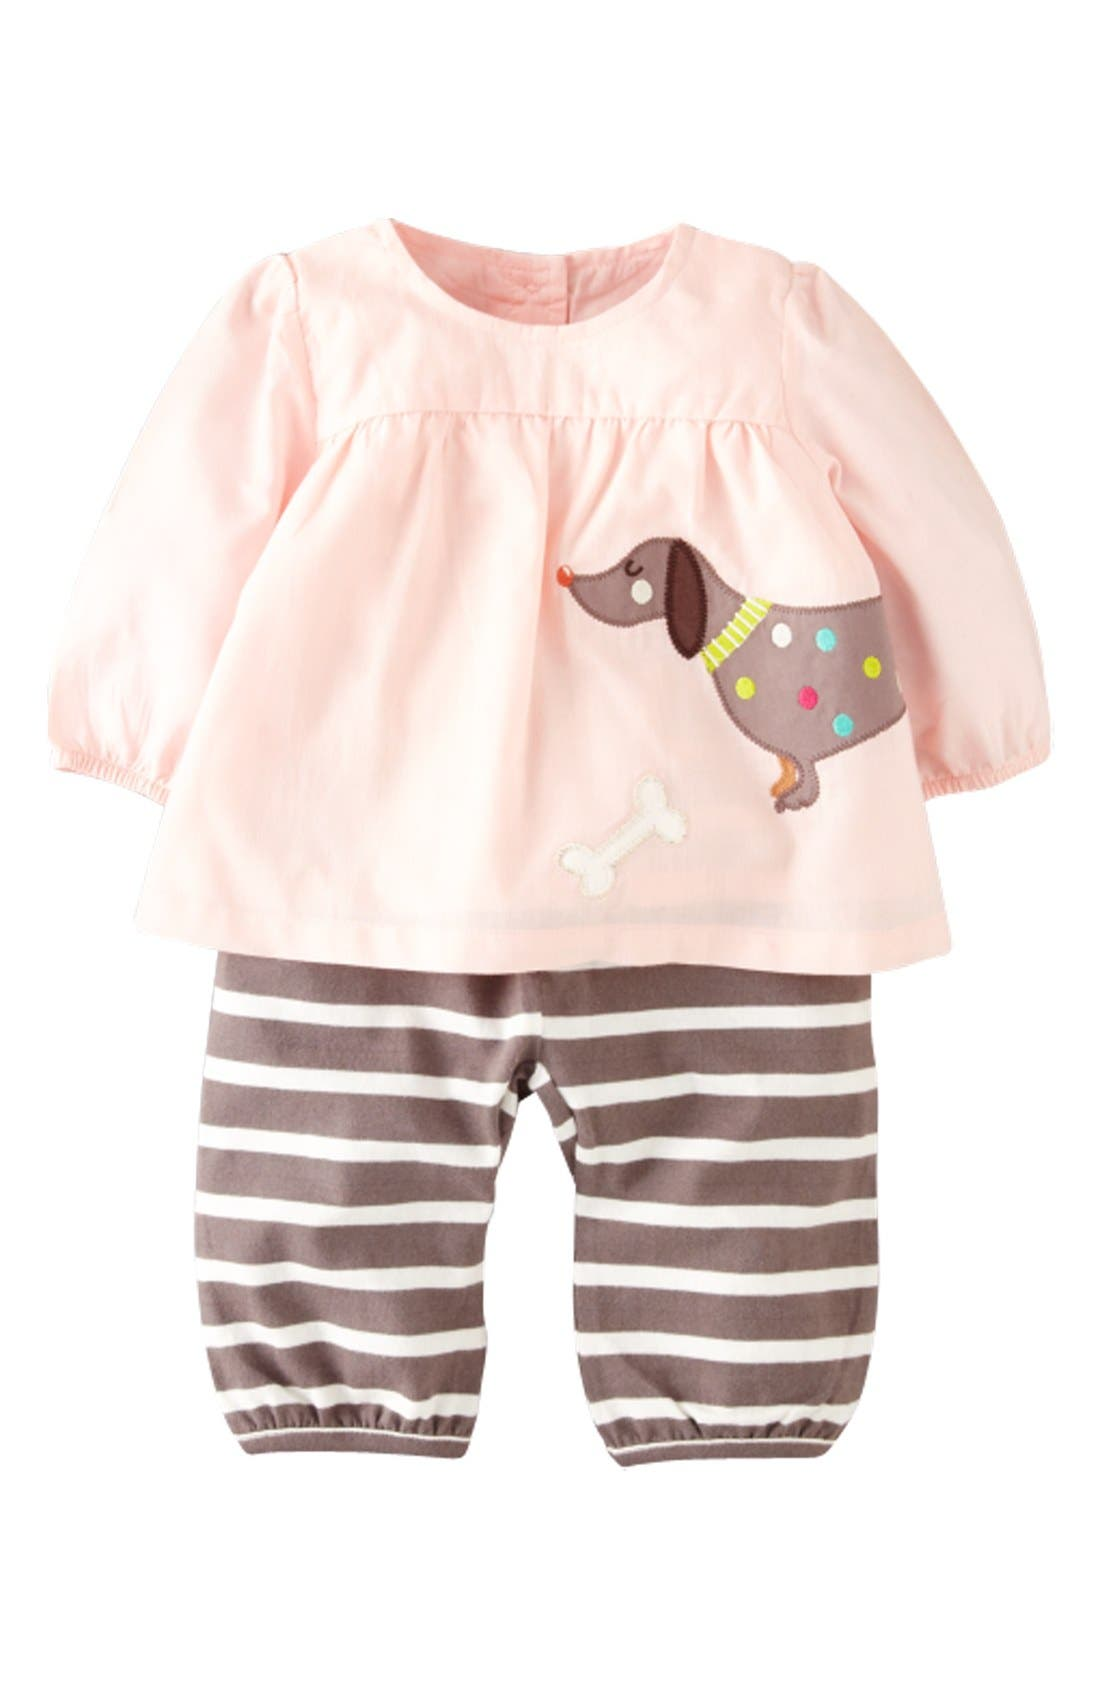 Main Image - Mini Boden Appliqué Tunic & Pants (Baby Girls)